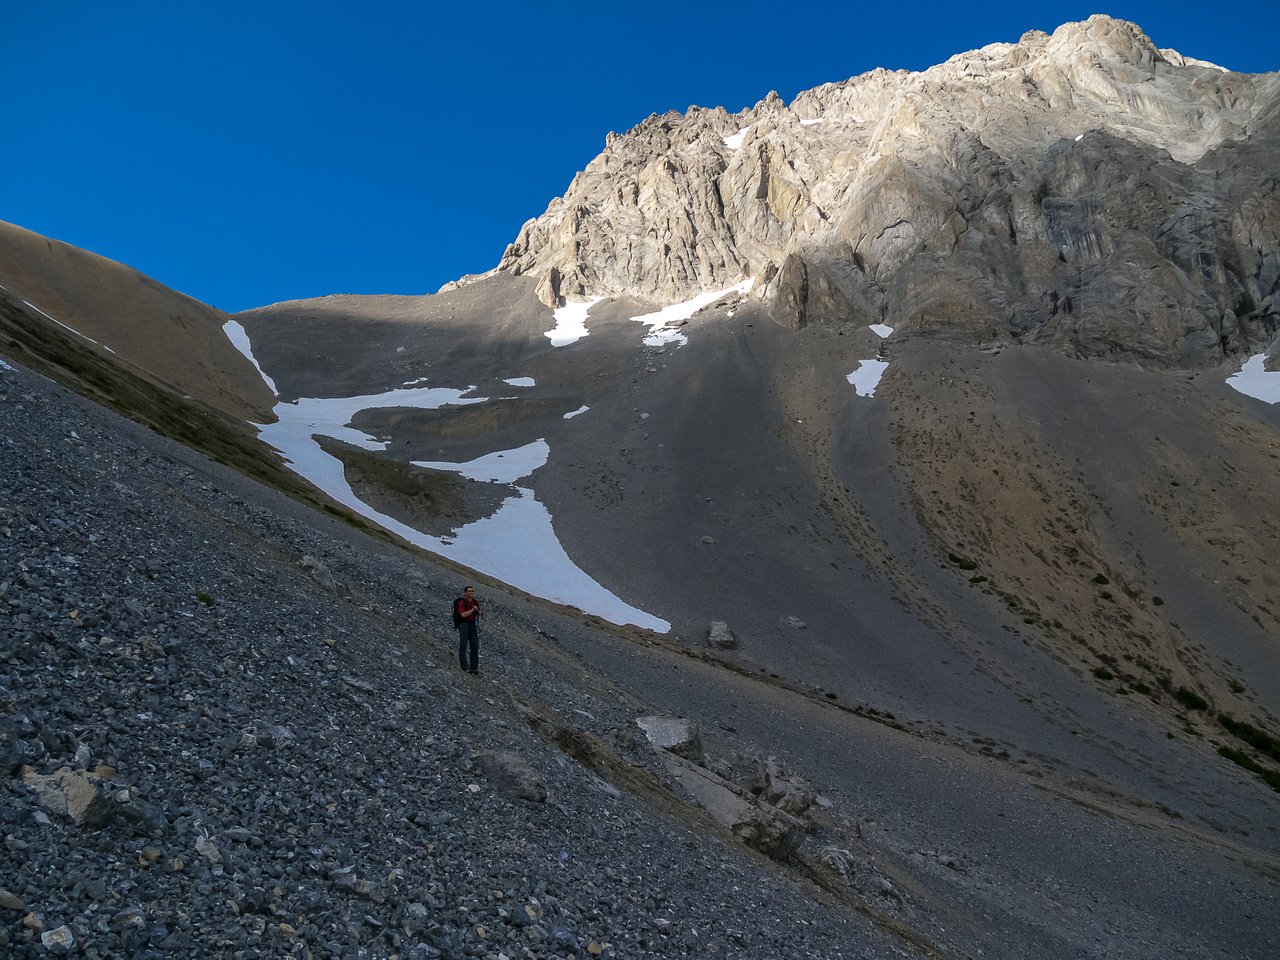 Slogging up to the col.